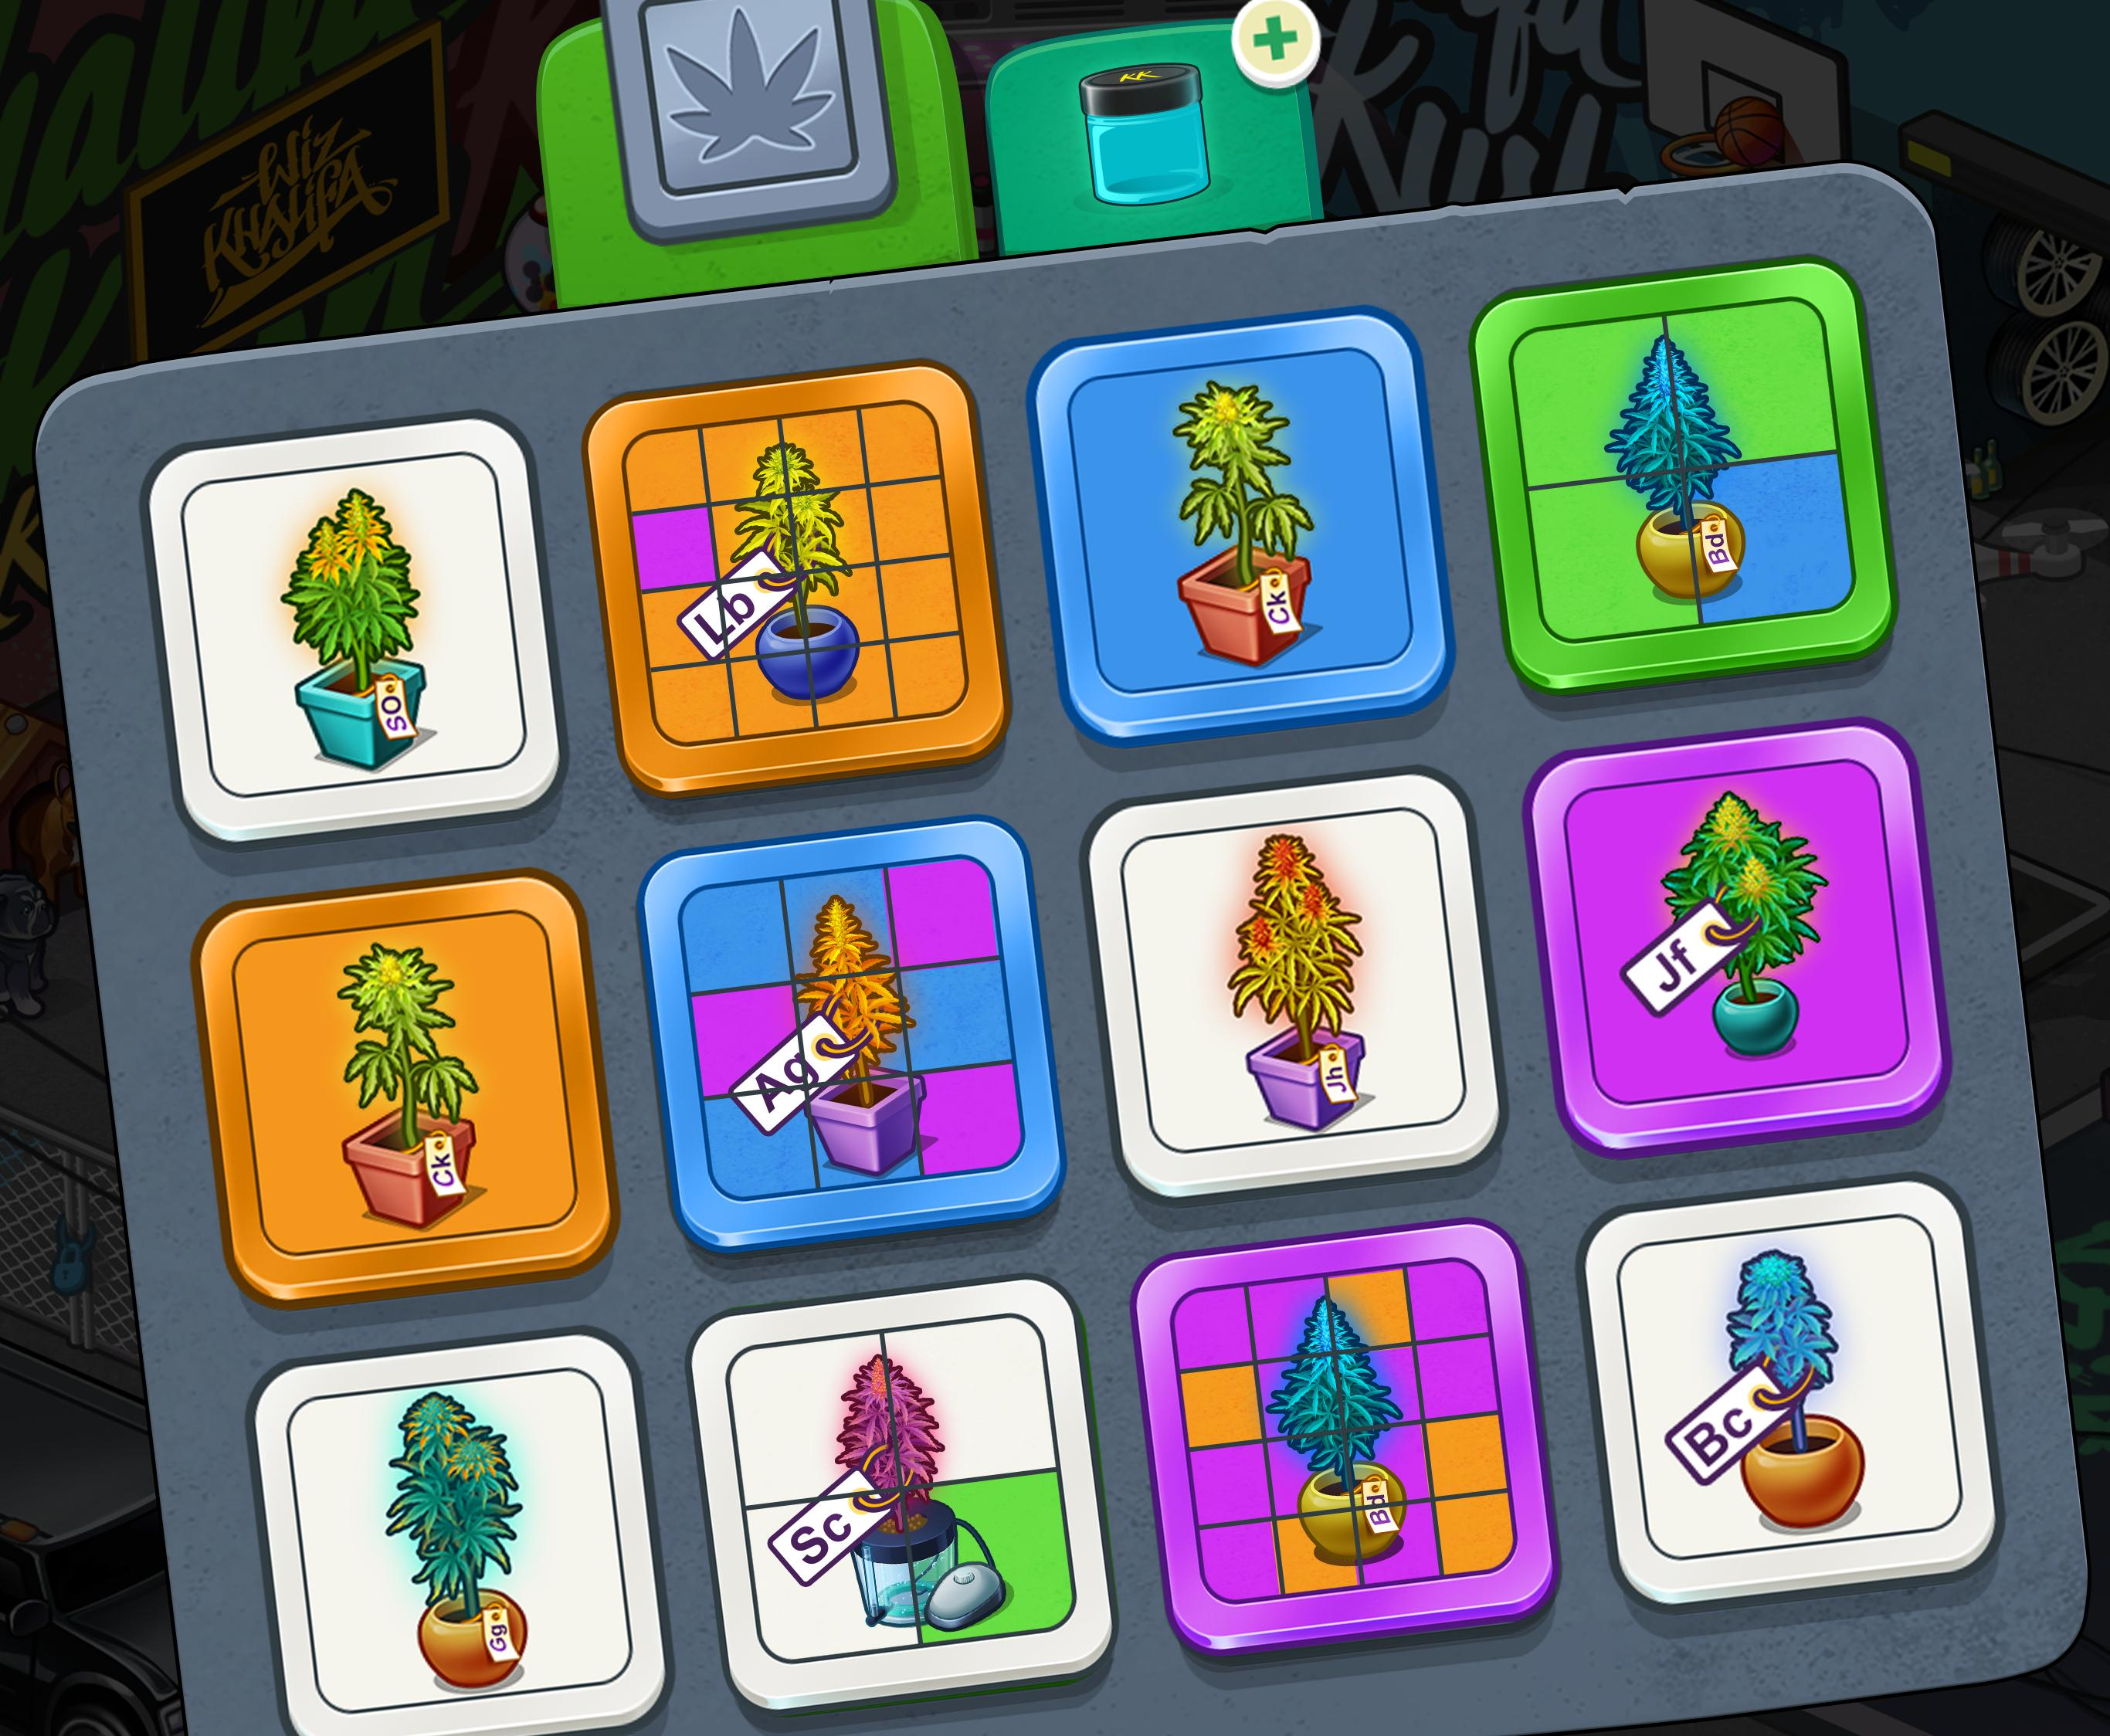 Wiz Khalifa's Weed Farm for Android - APK Download